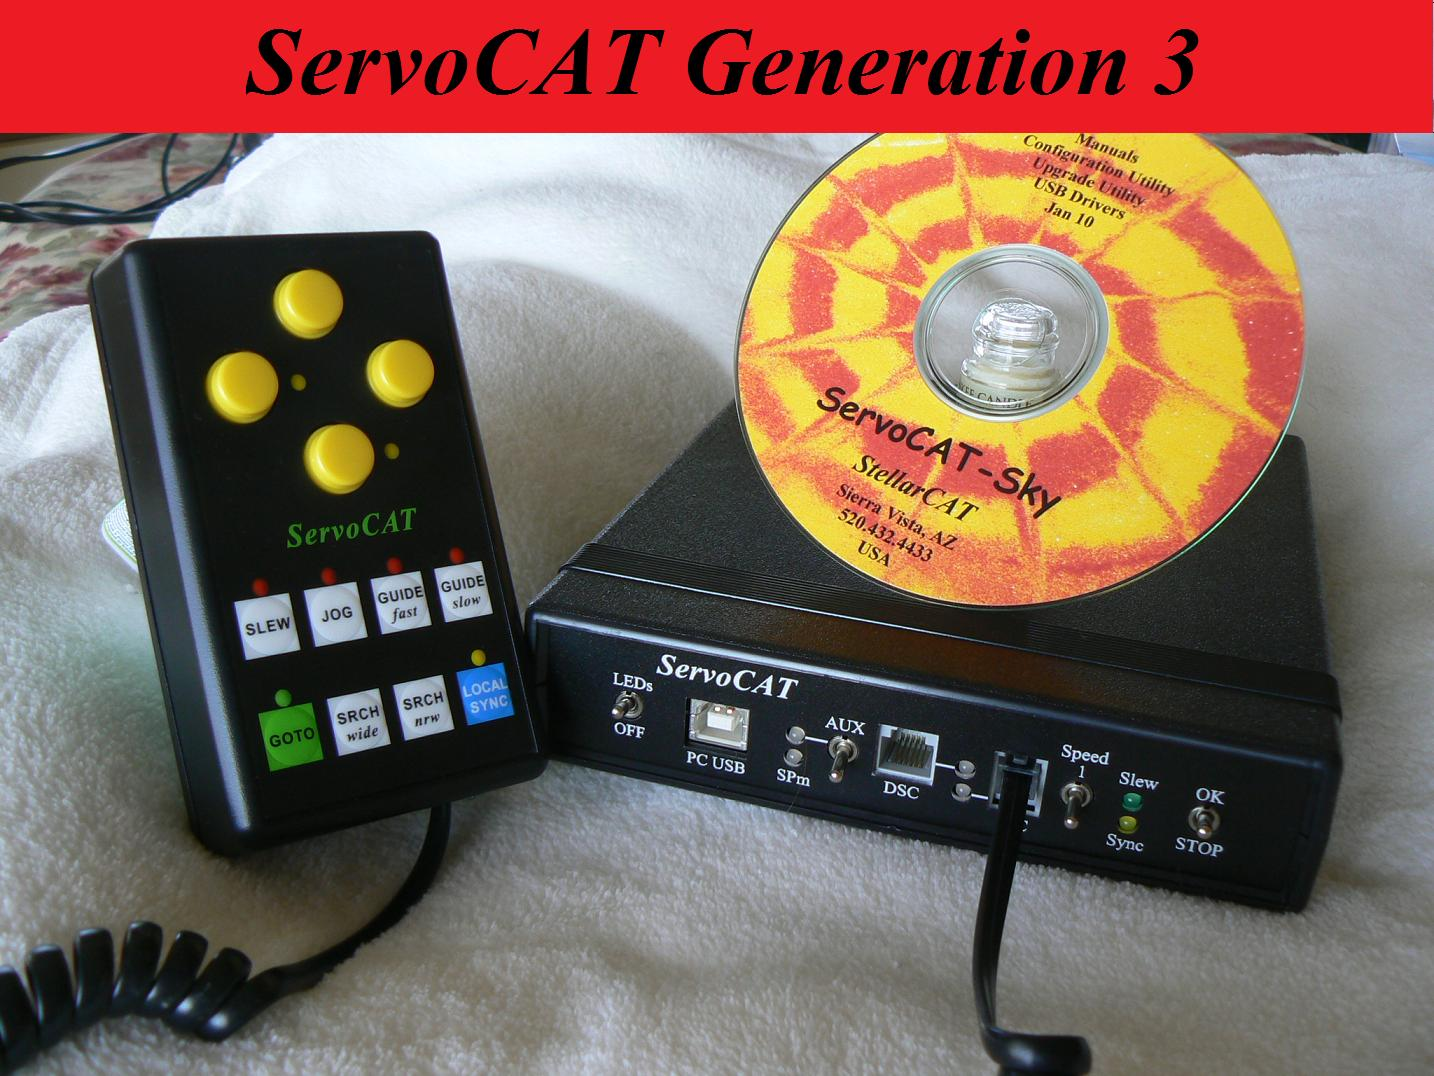 Gen3 ServoCAT and next-gen Wired Hand Controller